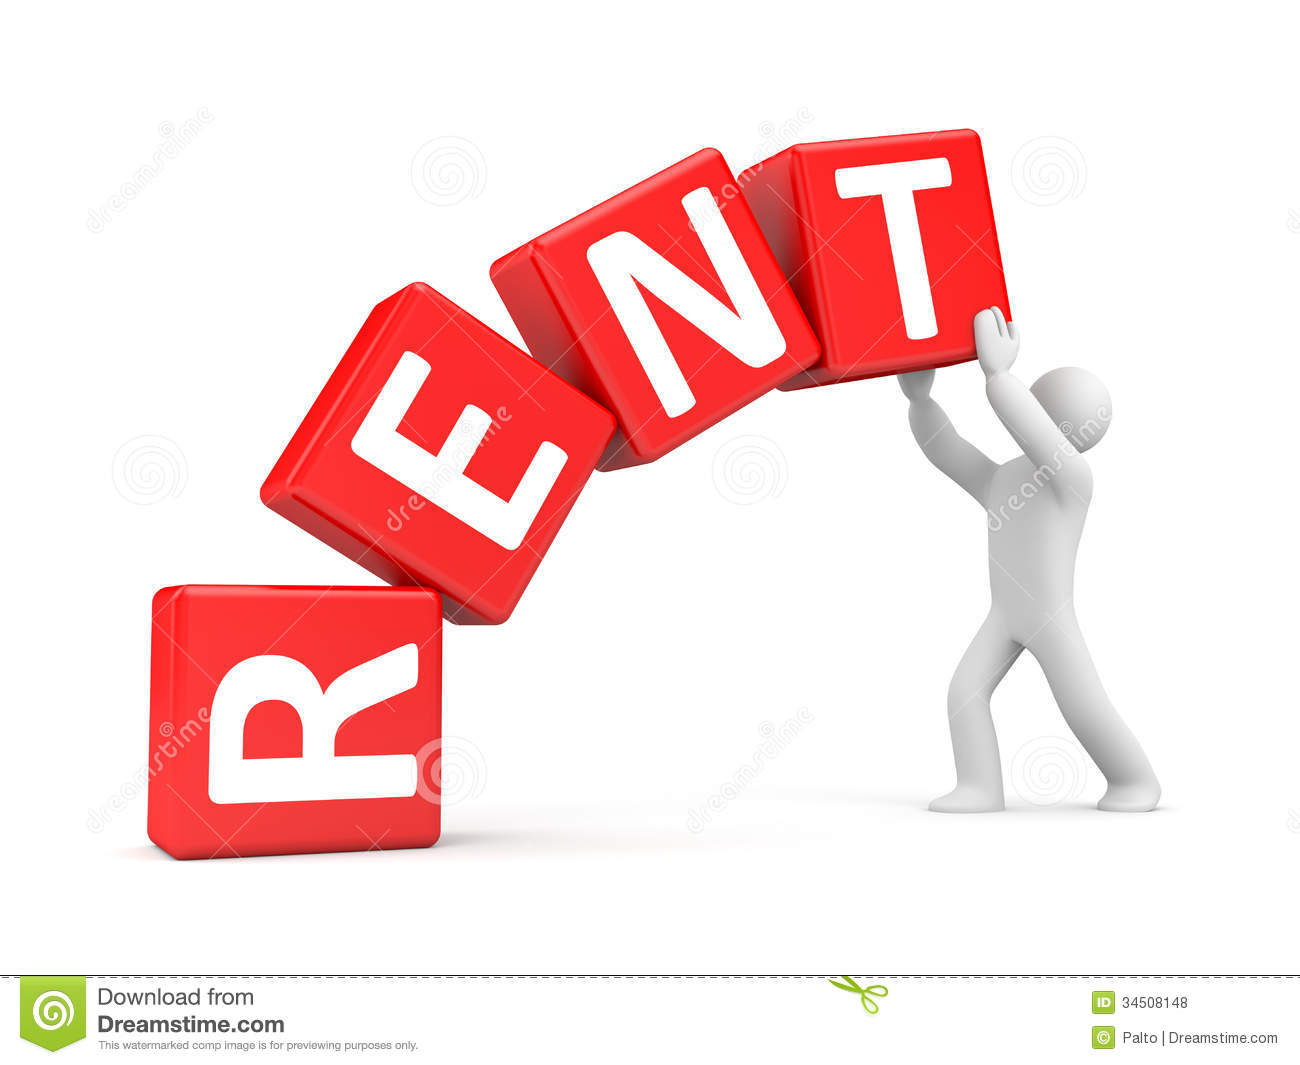 Apartments for rent clipart - Clipground